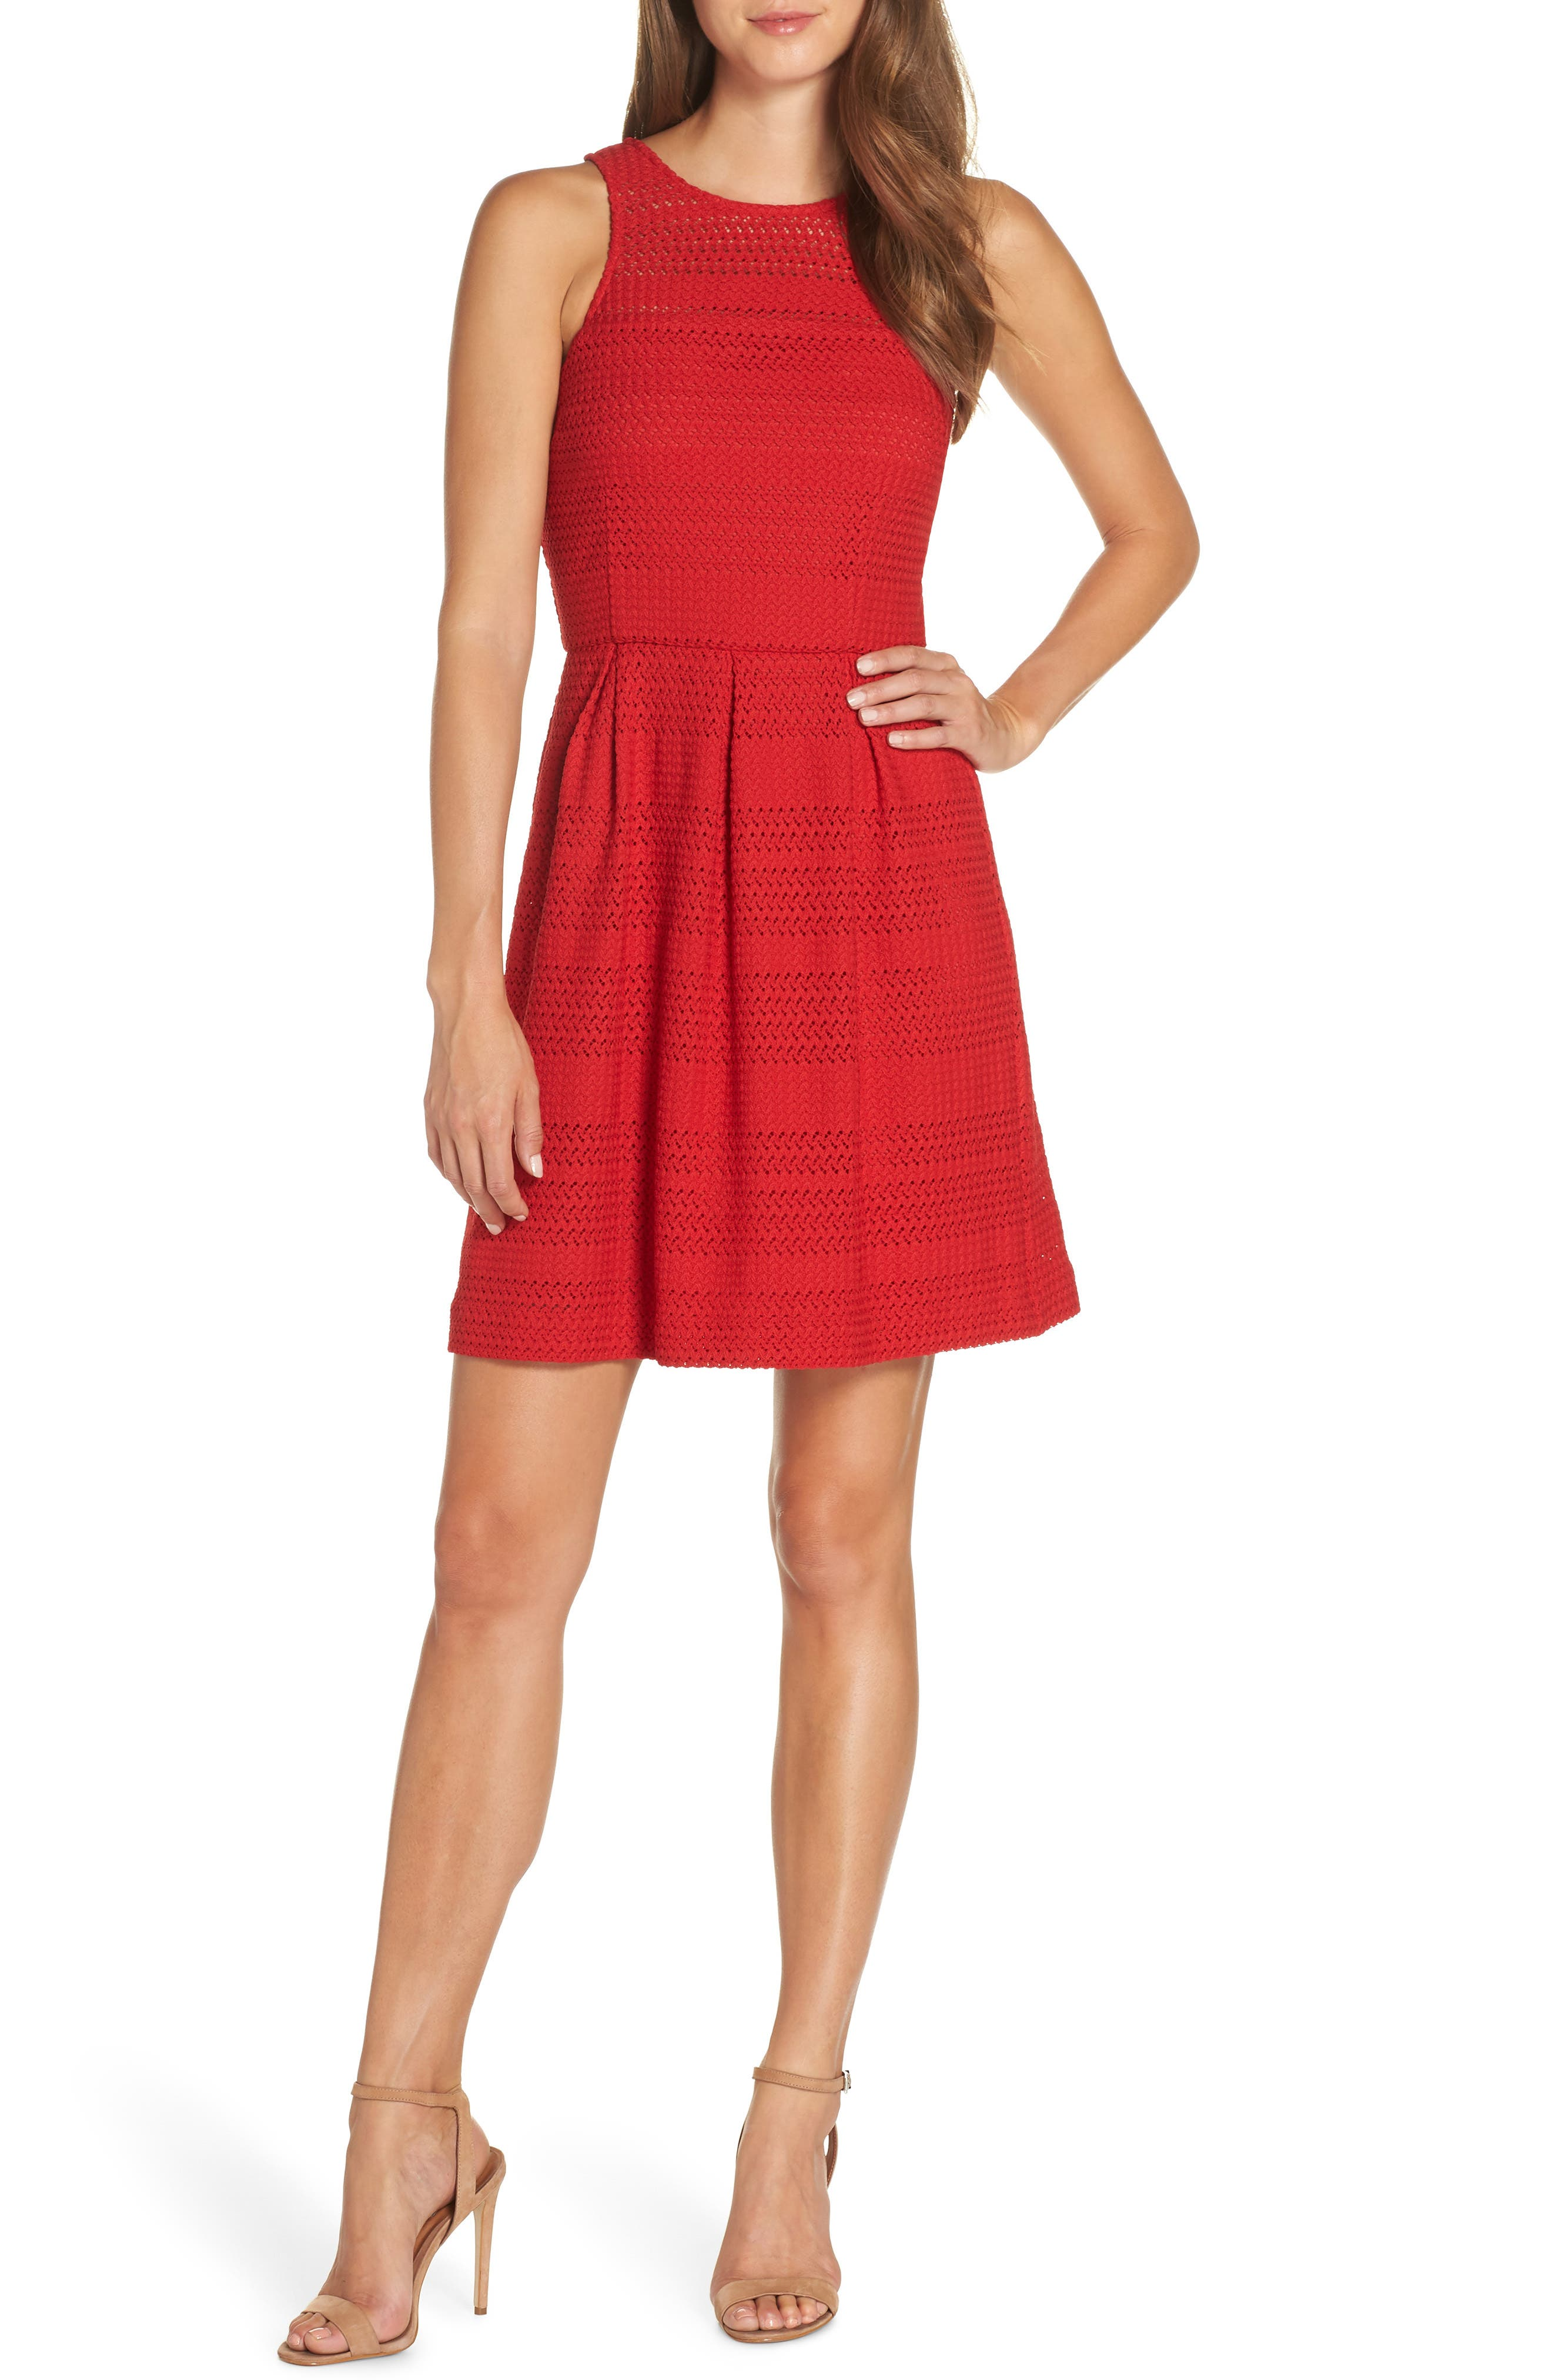 Keon Lace Fit & Flare Dress,                         Main,                         color, 645